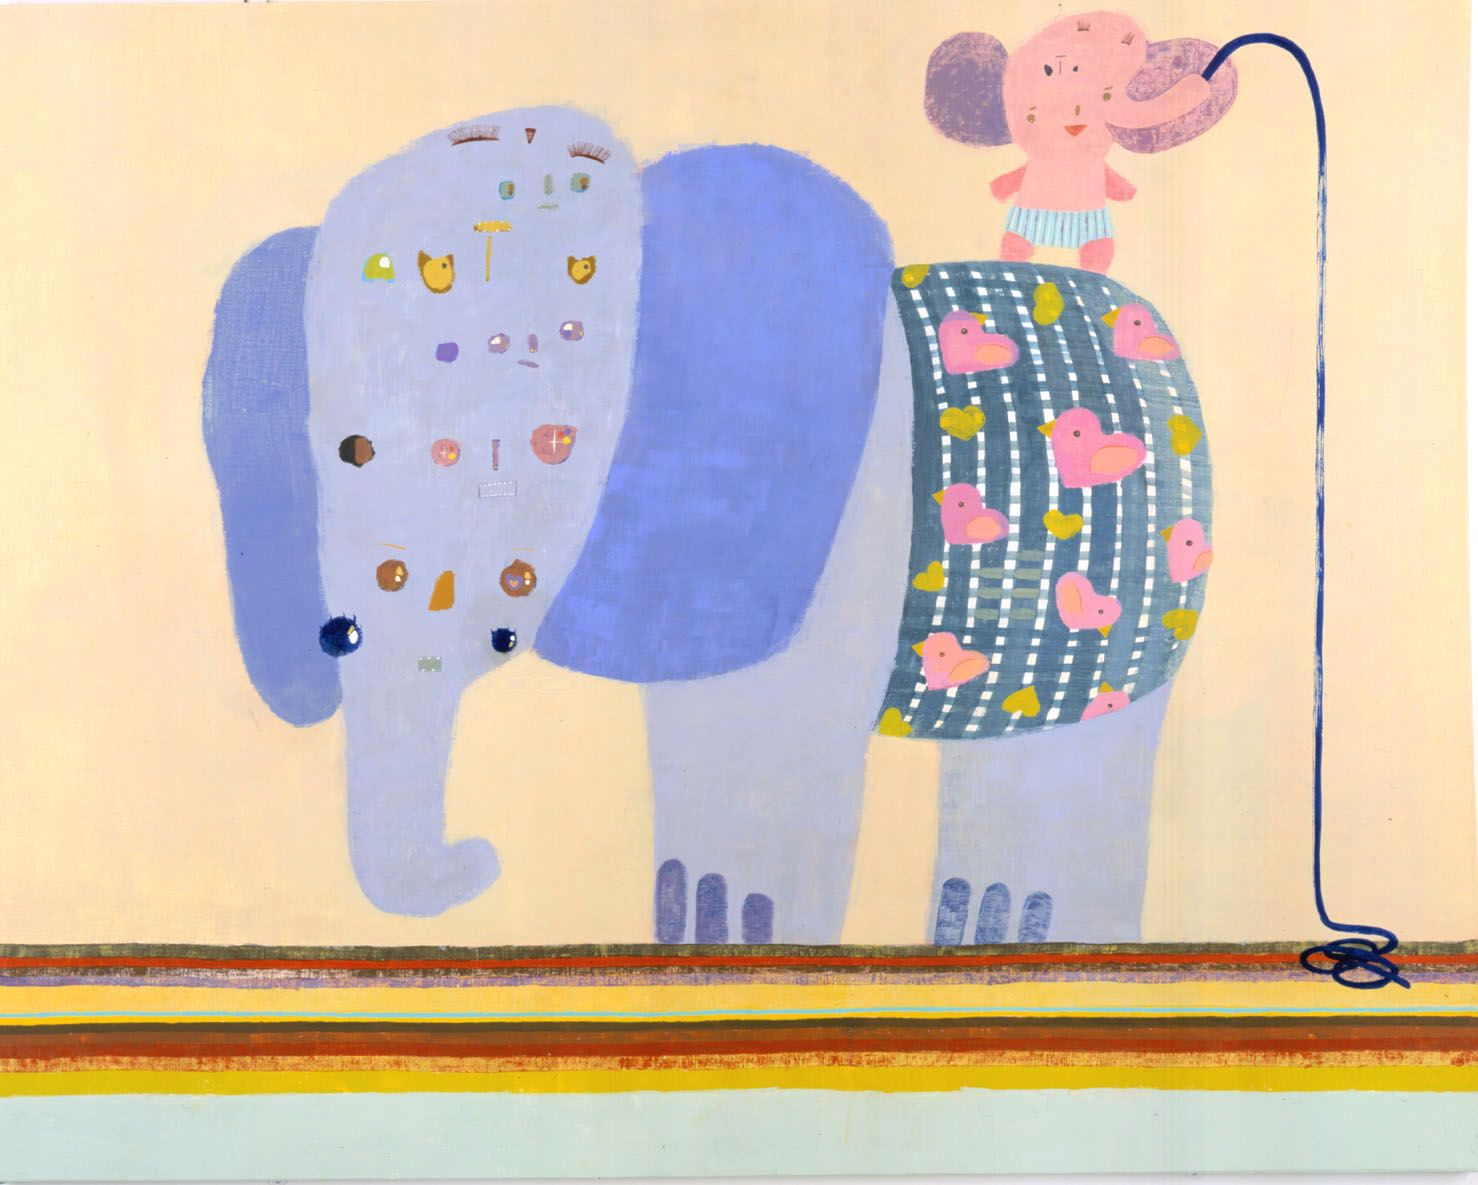 Chinatsu Ban, Eyeball Elephants, 2004